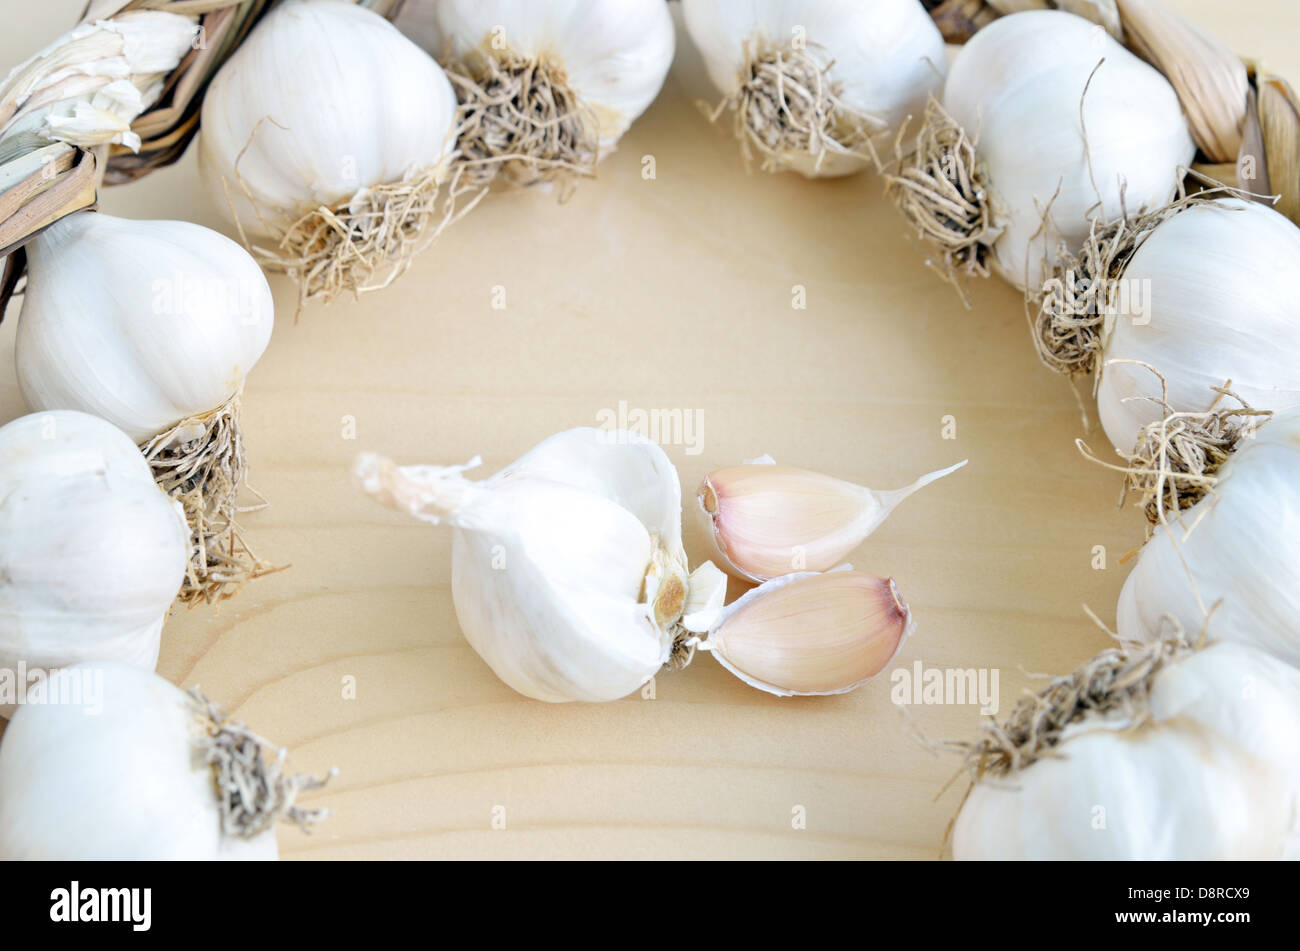 Organic garlic - Stock Image